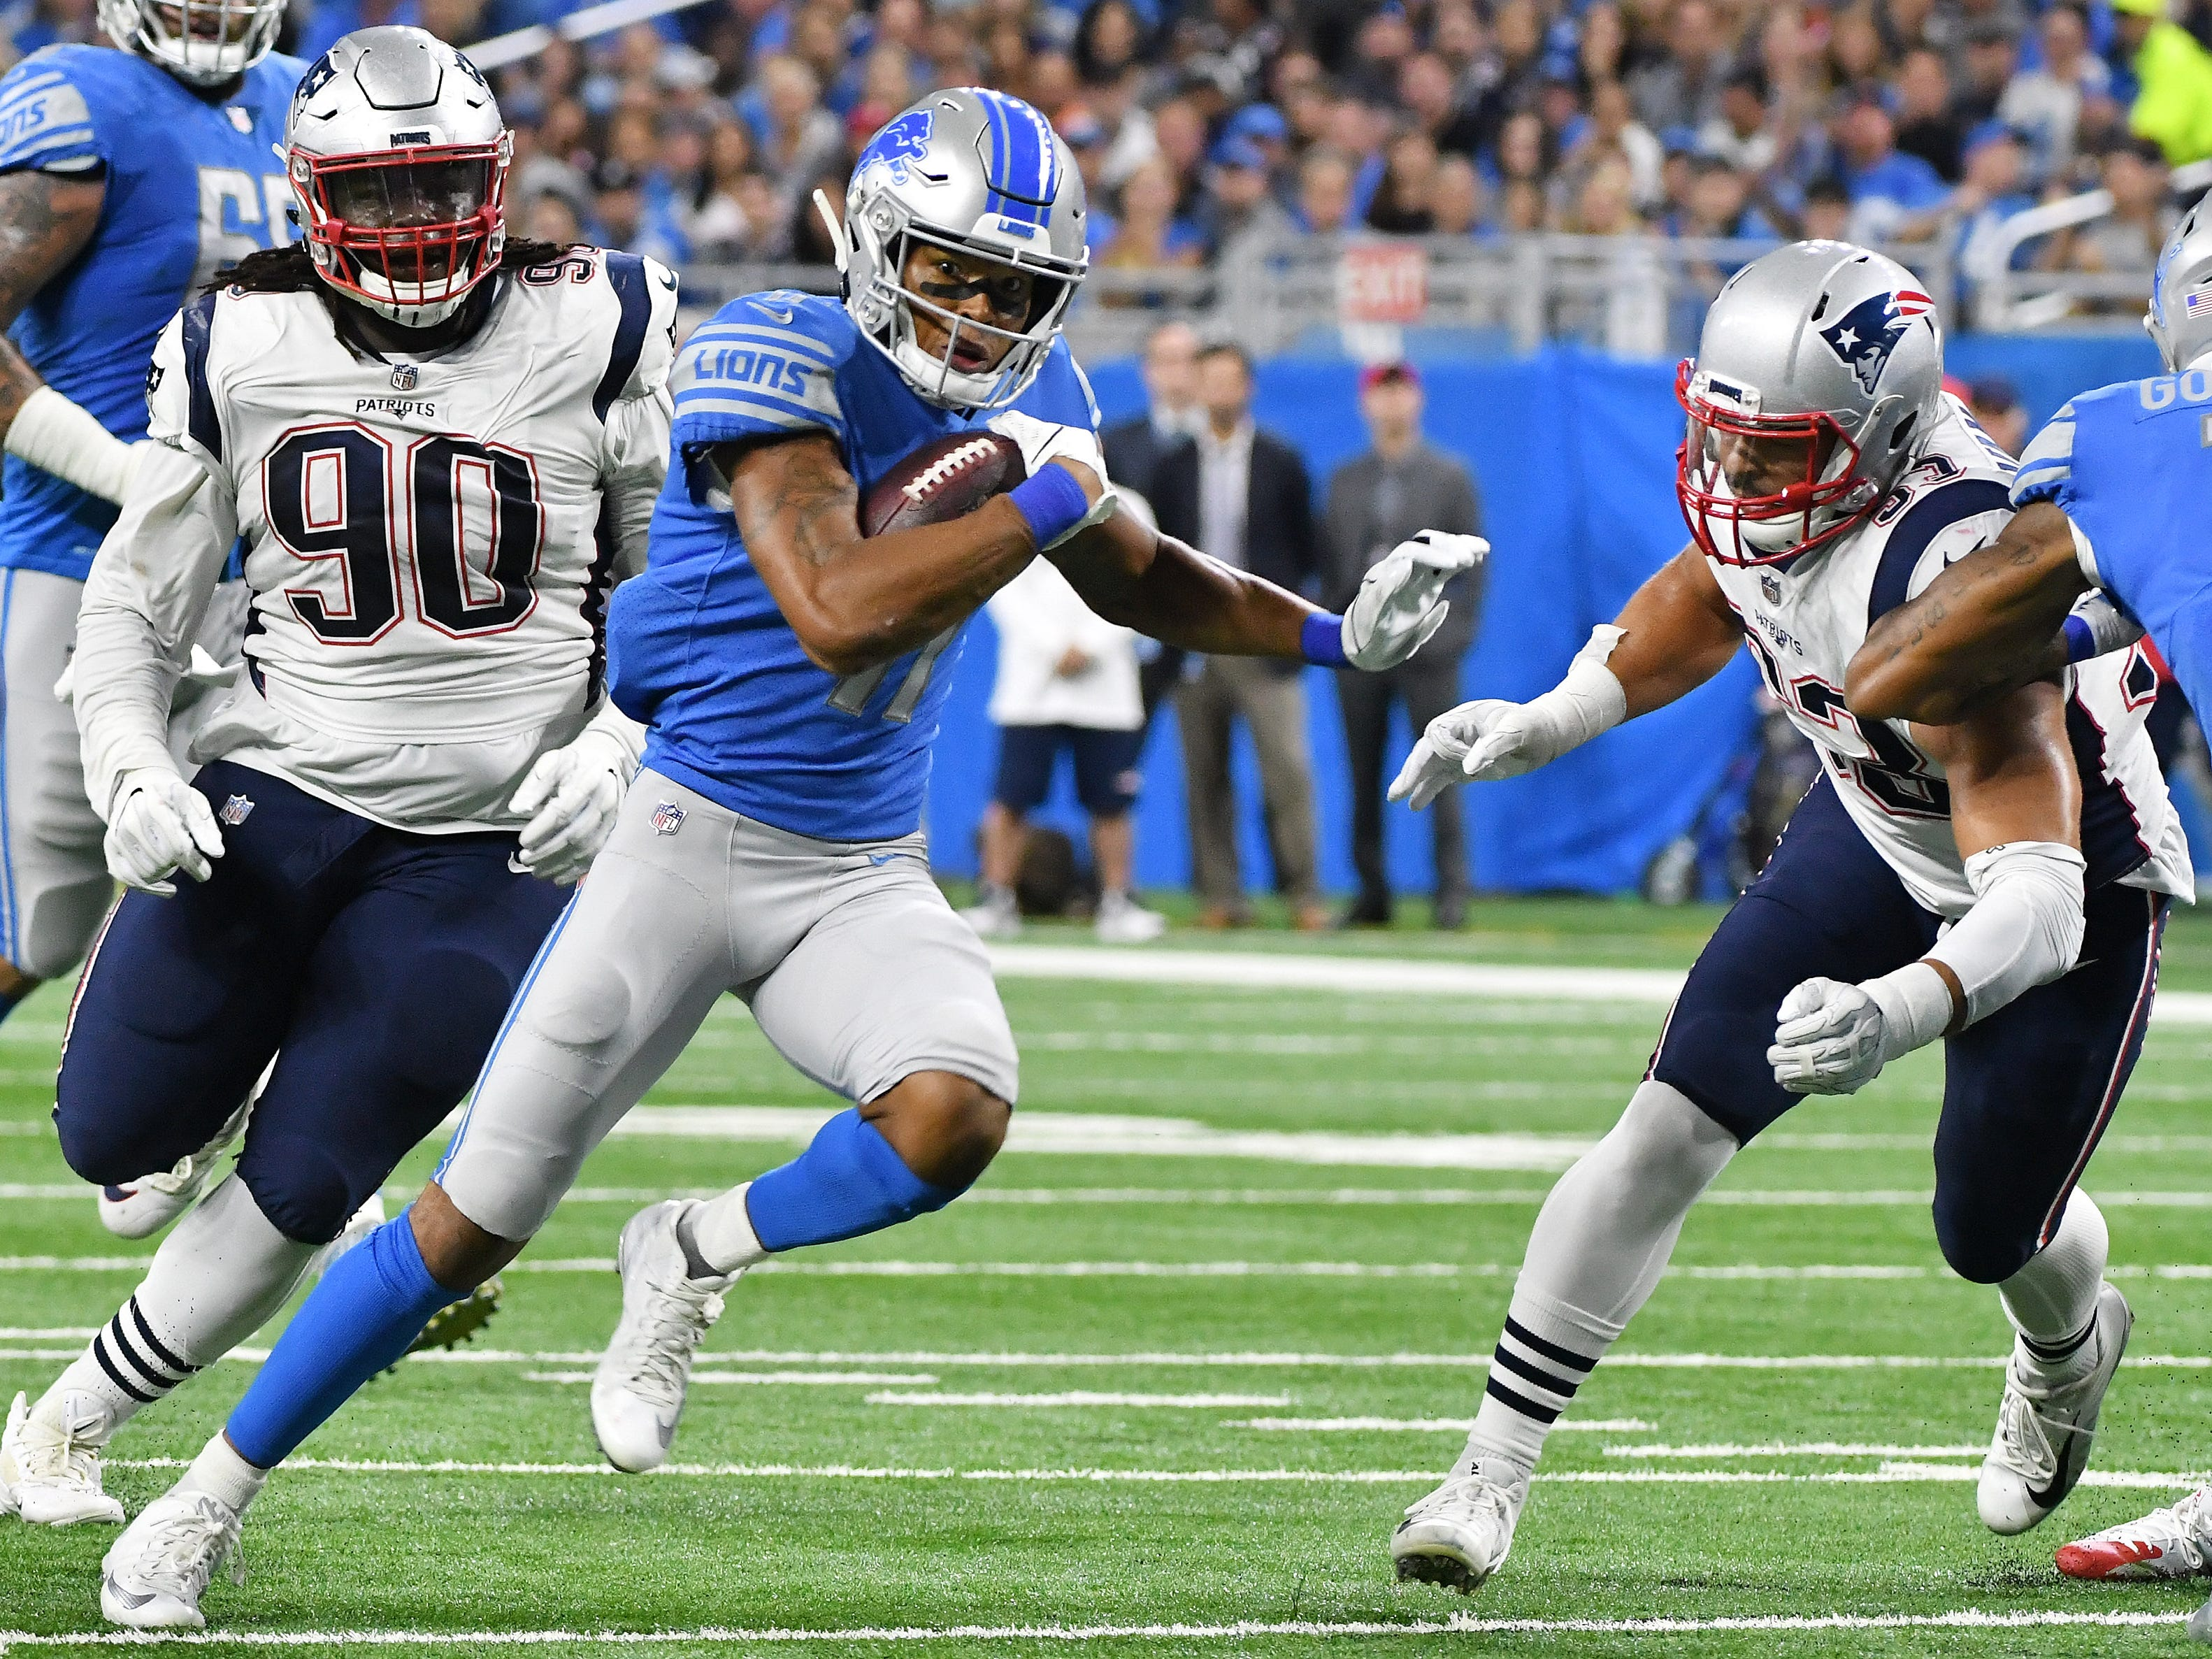 Patriots' Kyle Van Noy, right, comes in for an attempted tackle on Lions' Marvin Jones, Jr. running for a first down in the first half.